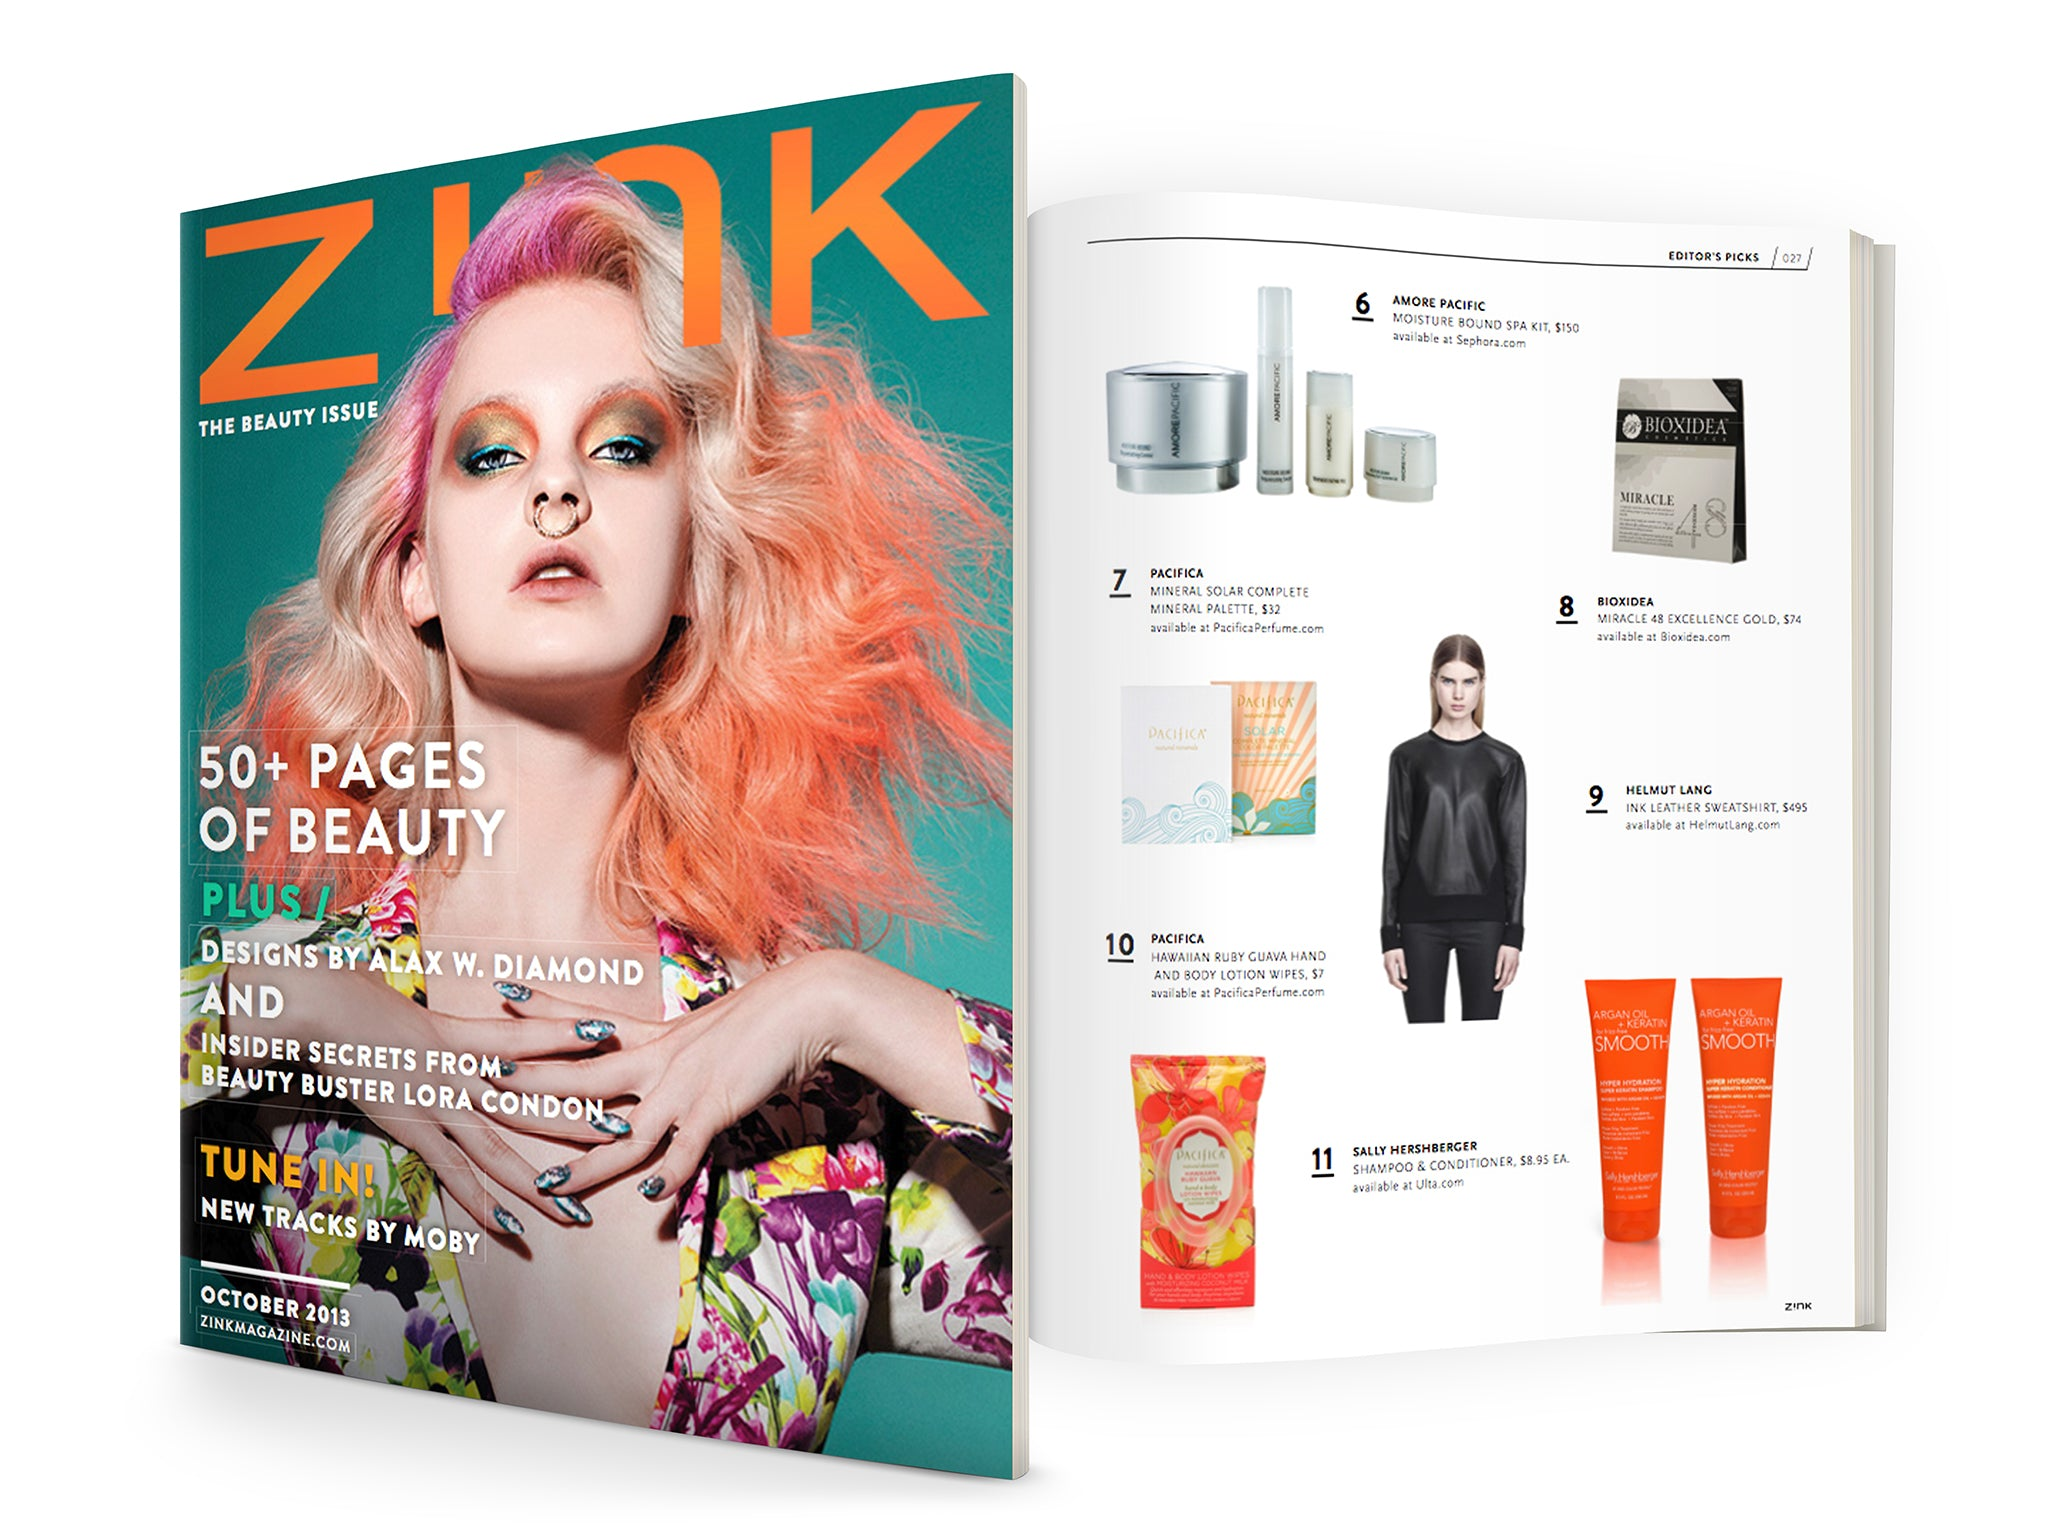 Editor's Pick - BIOXIDEA Miracle48 Excellence Gold Face & Body Lift featured in Zink Magazine